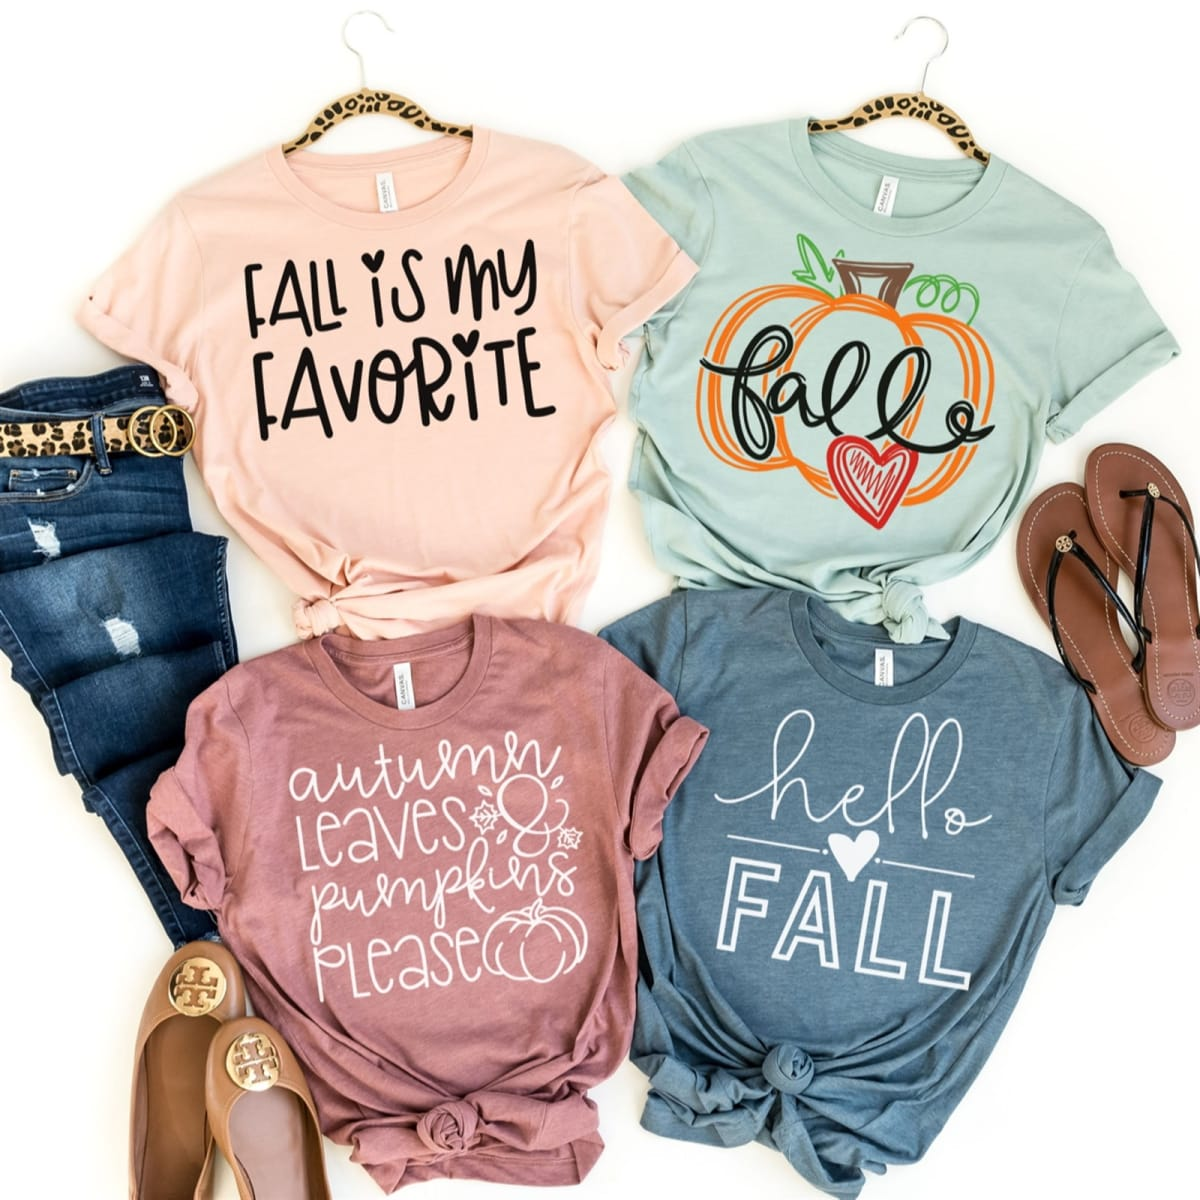 Fall Is My Favorite Graphic Tees